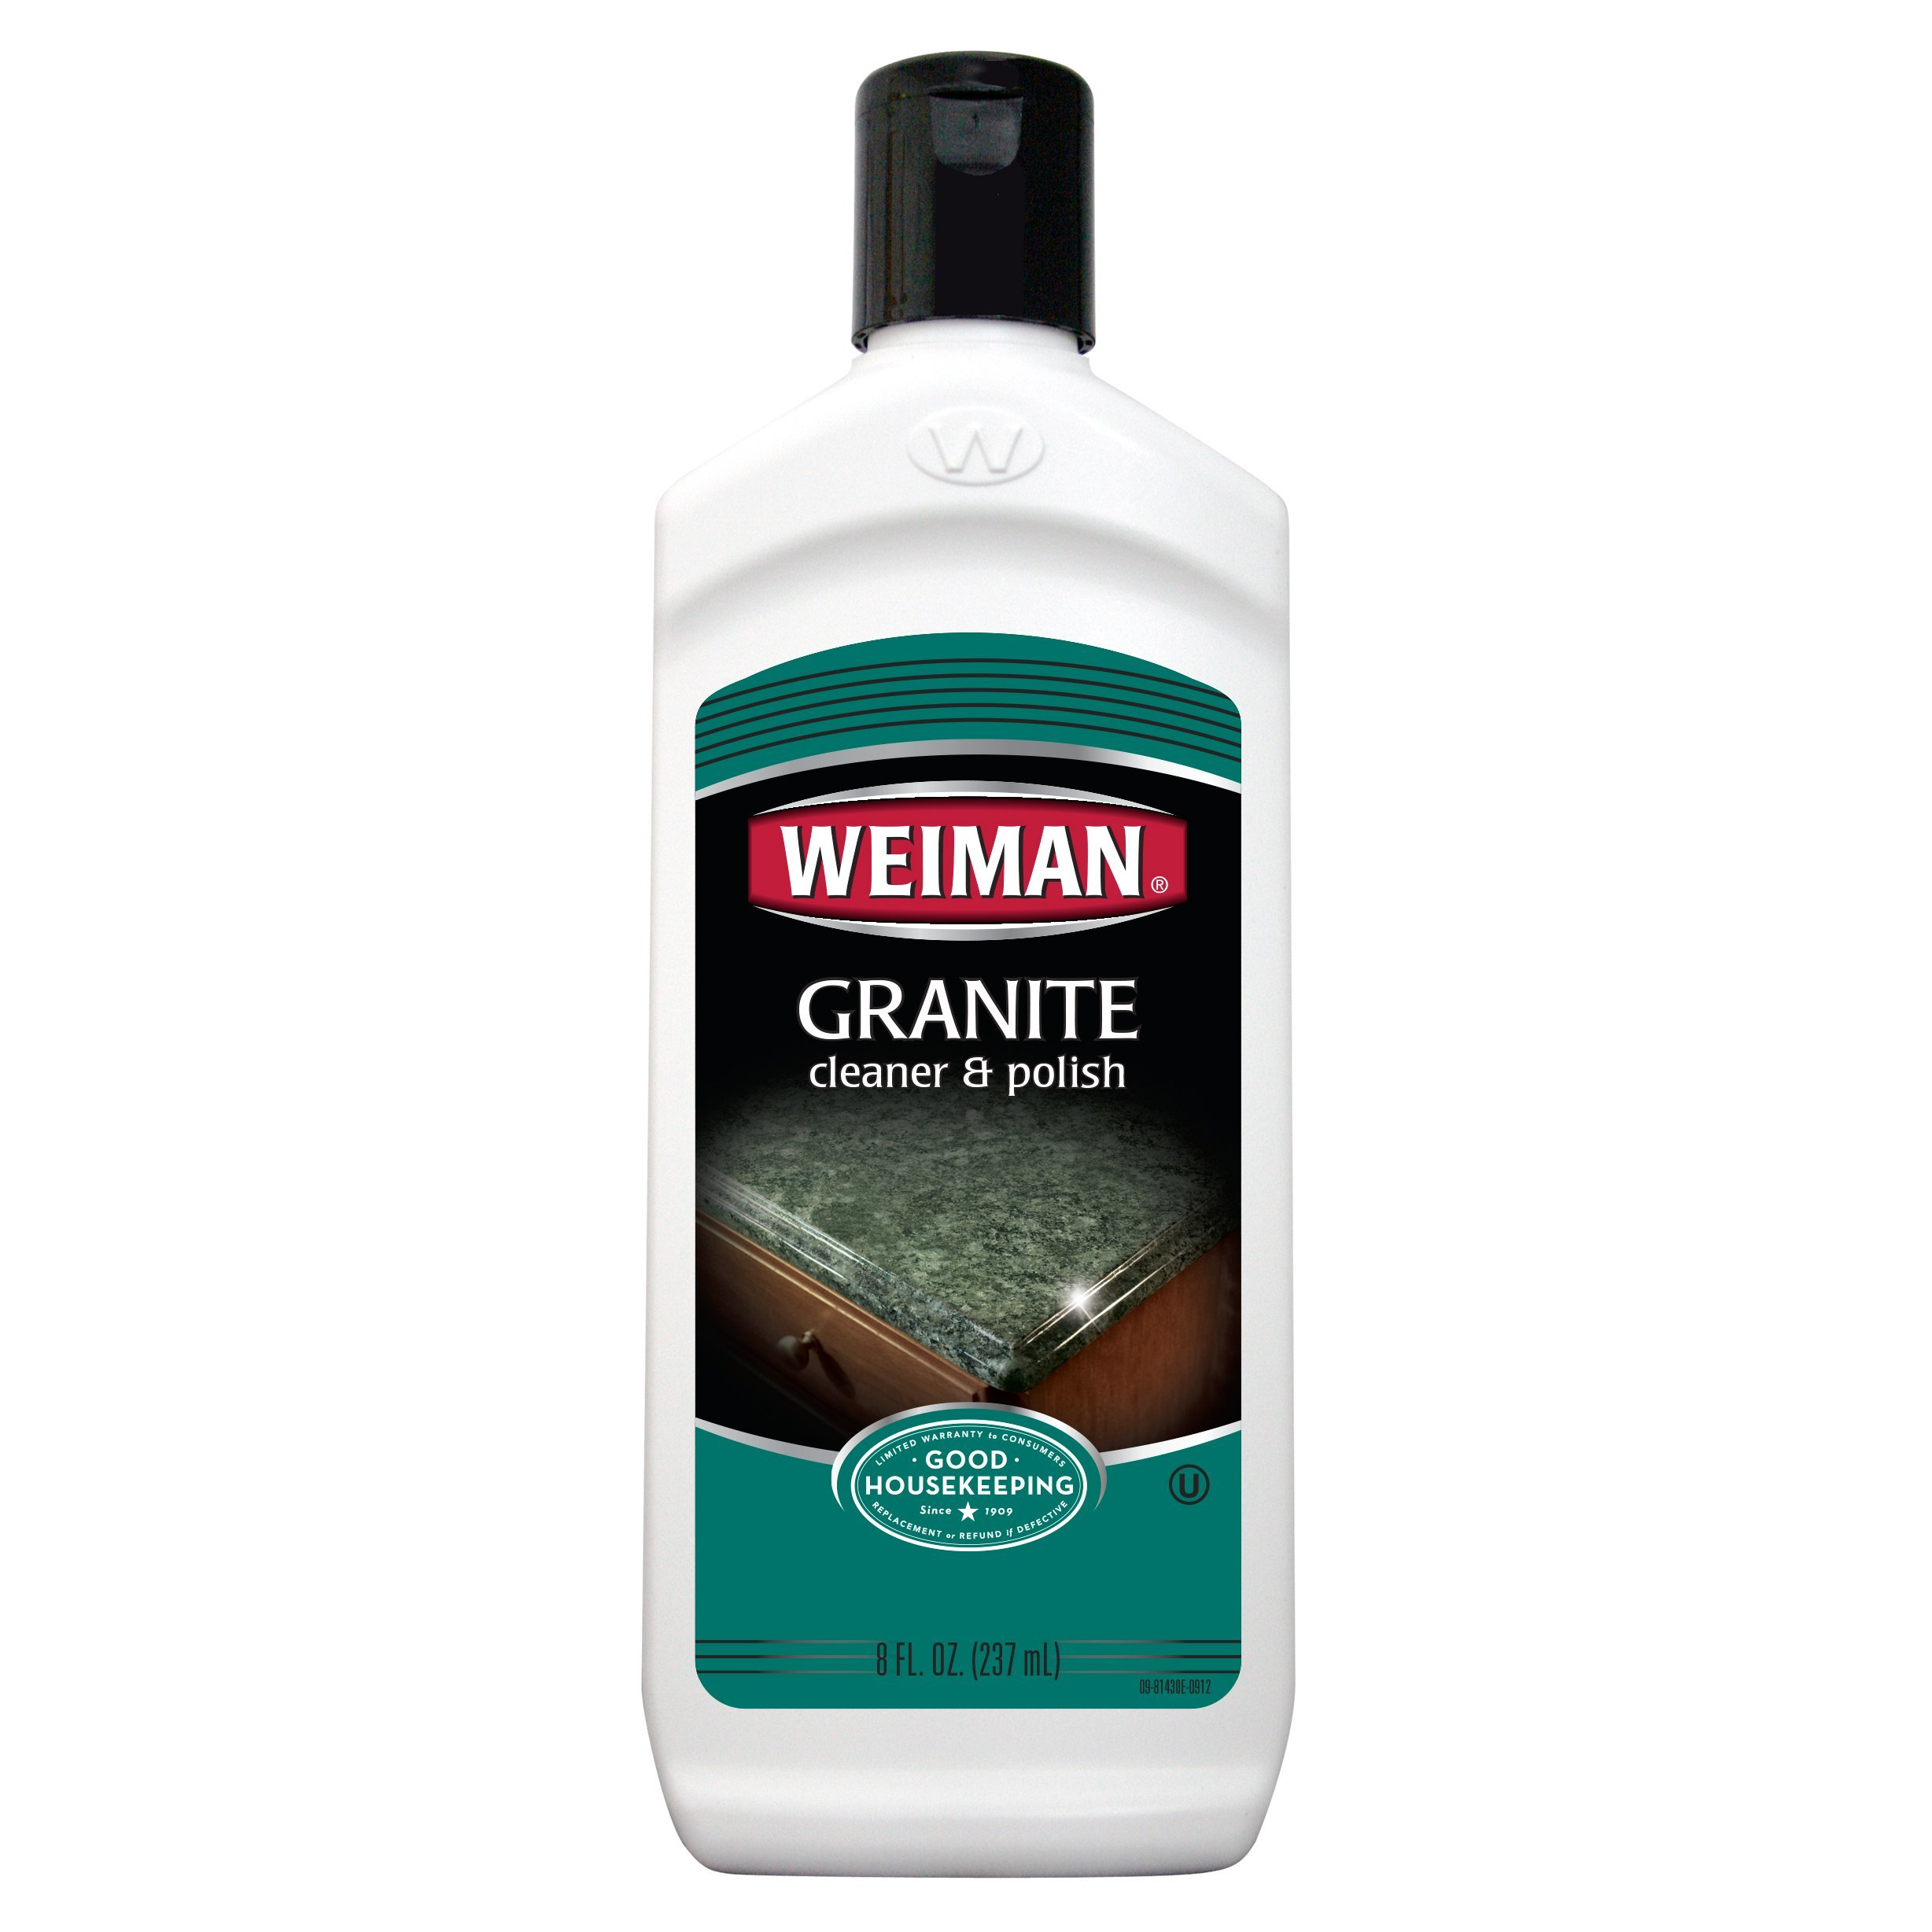 Weiman Granite Cleaner and Polish - 8 Ounce 6 Pack - For Granite Marble Soapstone Quartz Quartzite Slate Limestone Corian Laminate Tile Countertop and More by Weiman (Image #1)